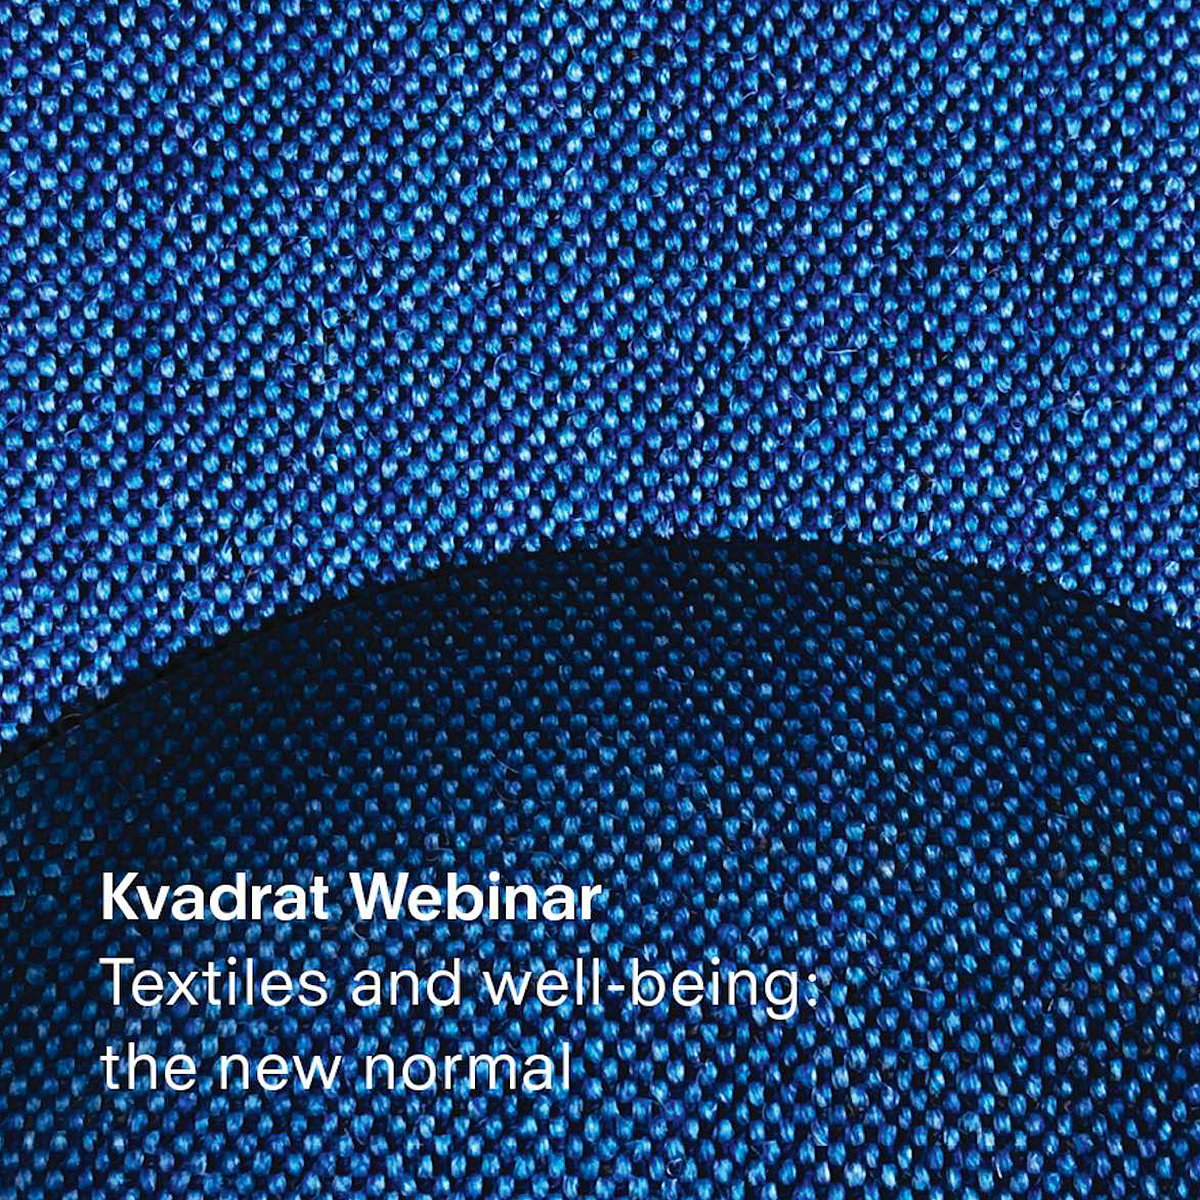 Textiles and Wellbeing - The New Normal